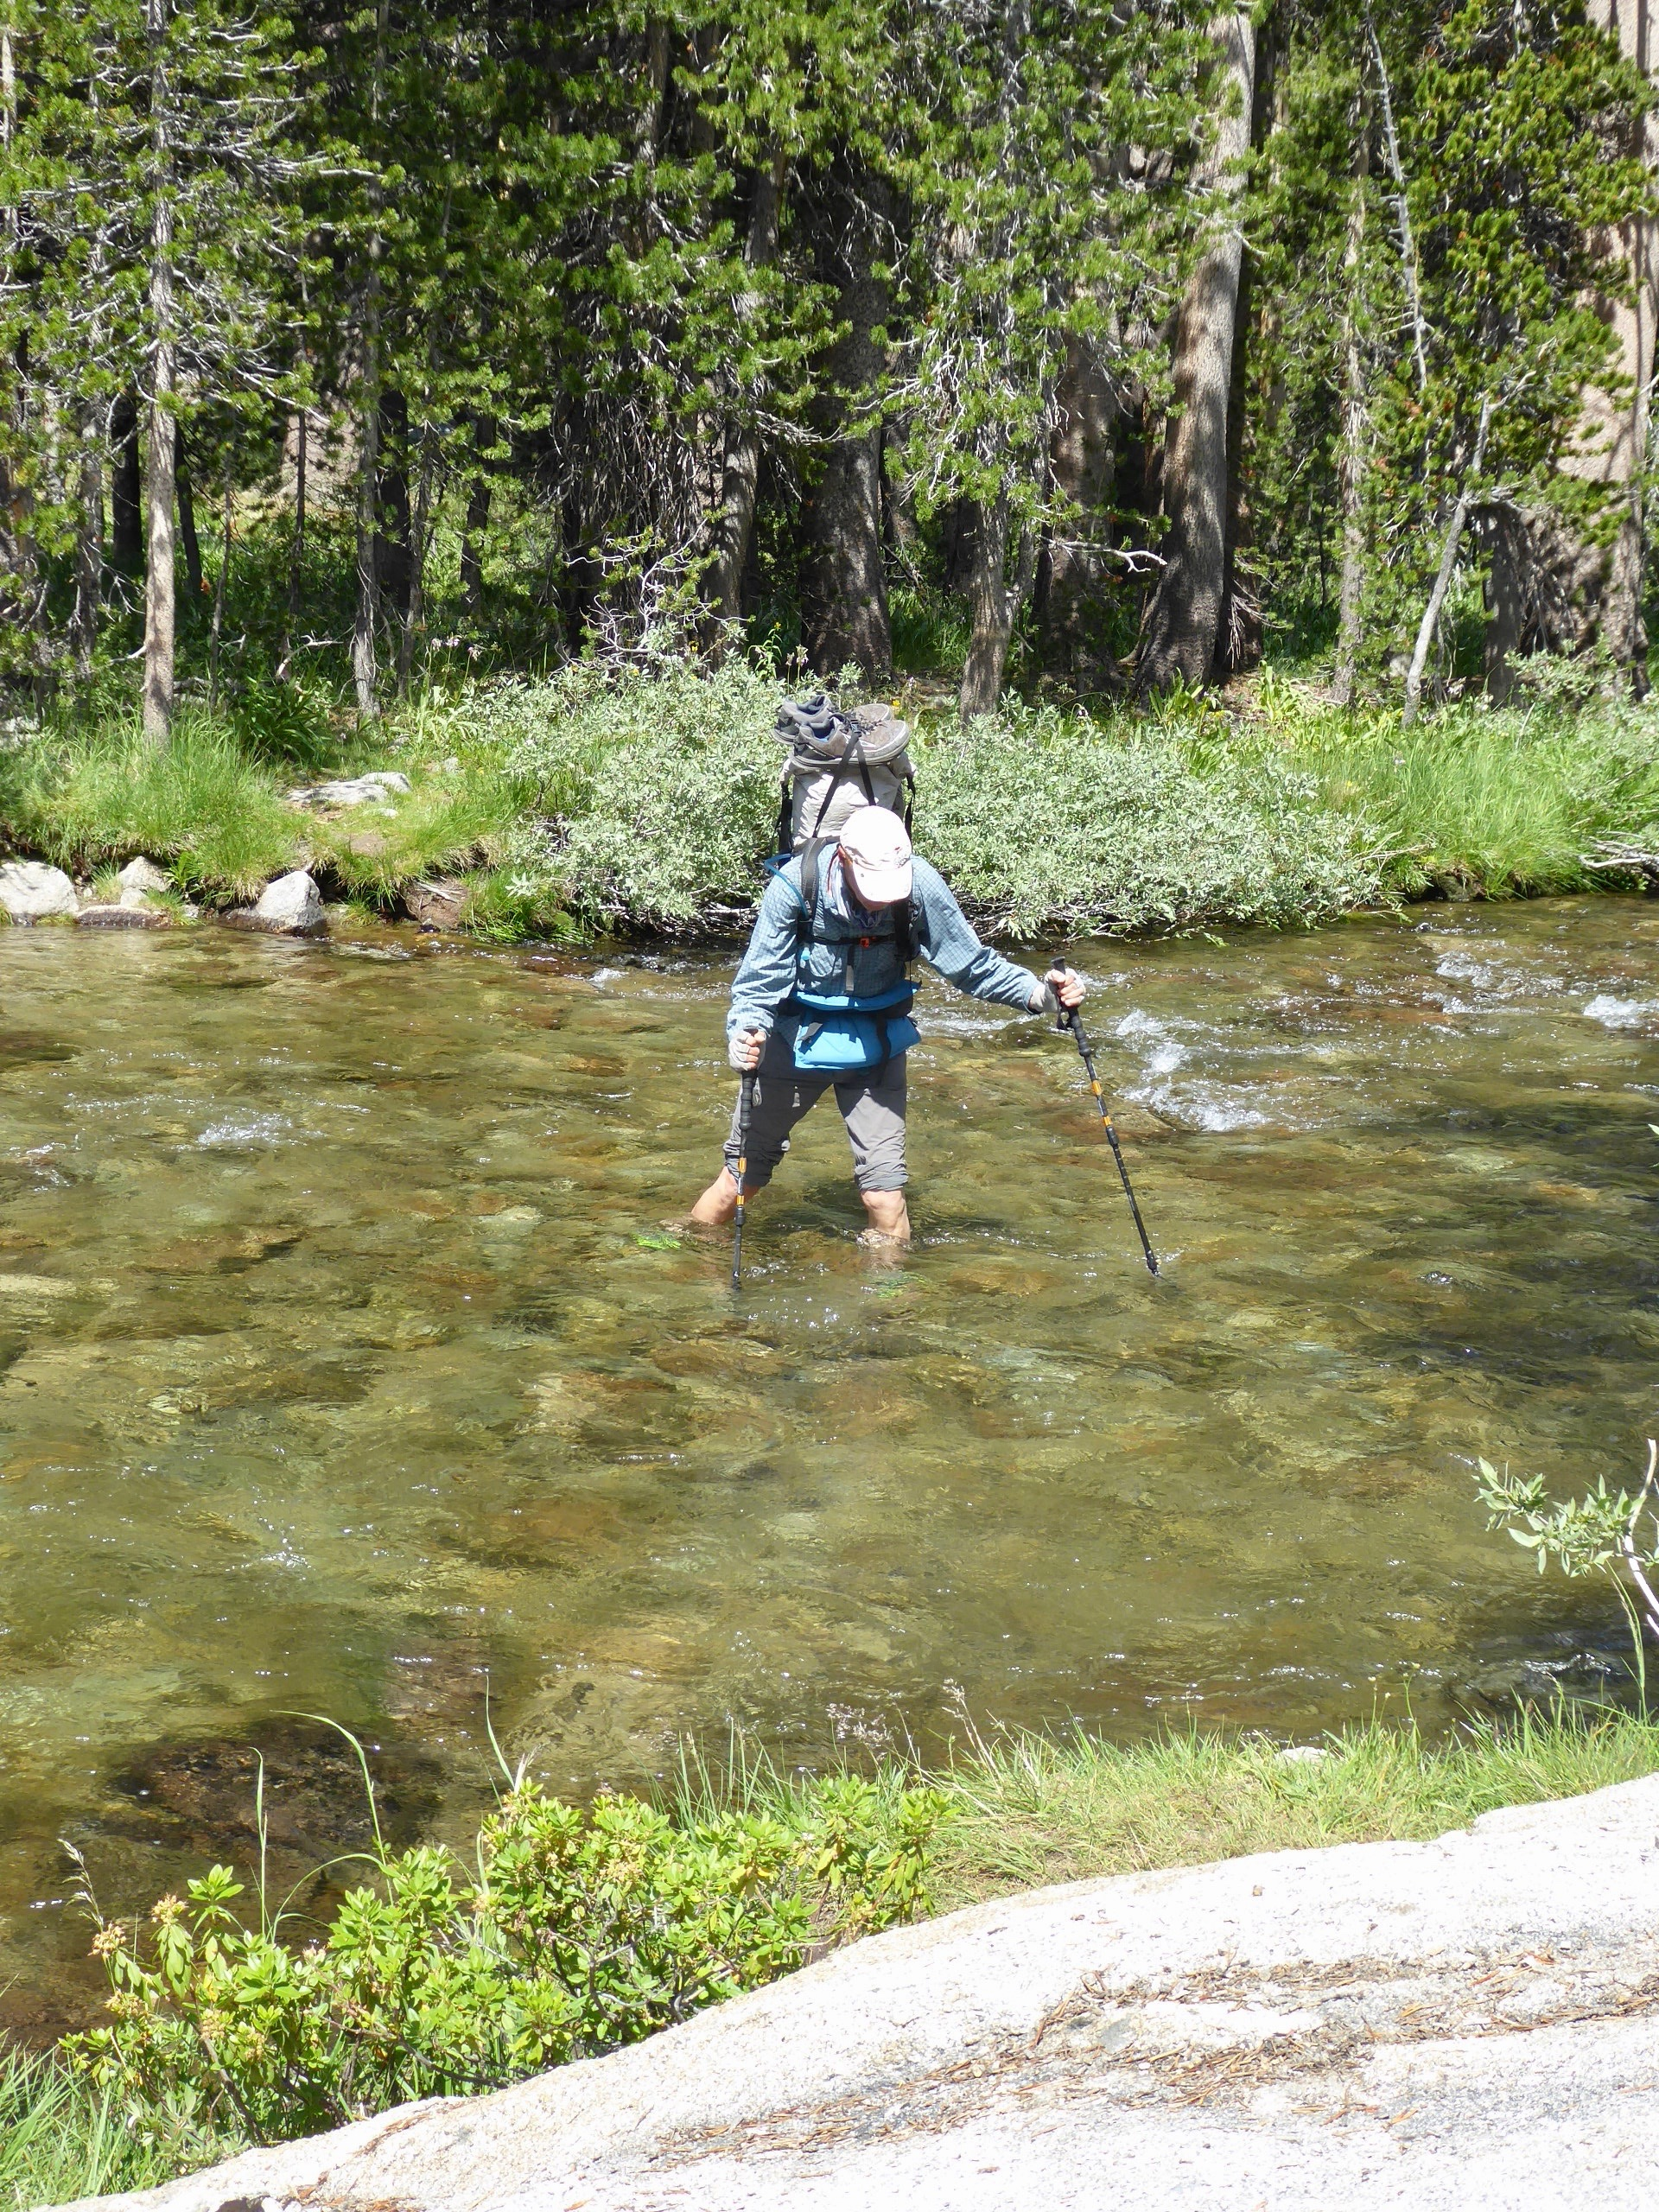 If non are present, the option is to put on wet shoes and go wading. We have been fortunate that none are real deep or have a strong current. A month ago when the snow was melting some streams were almost impossible to ford.